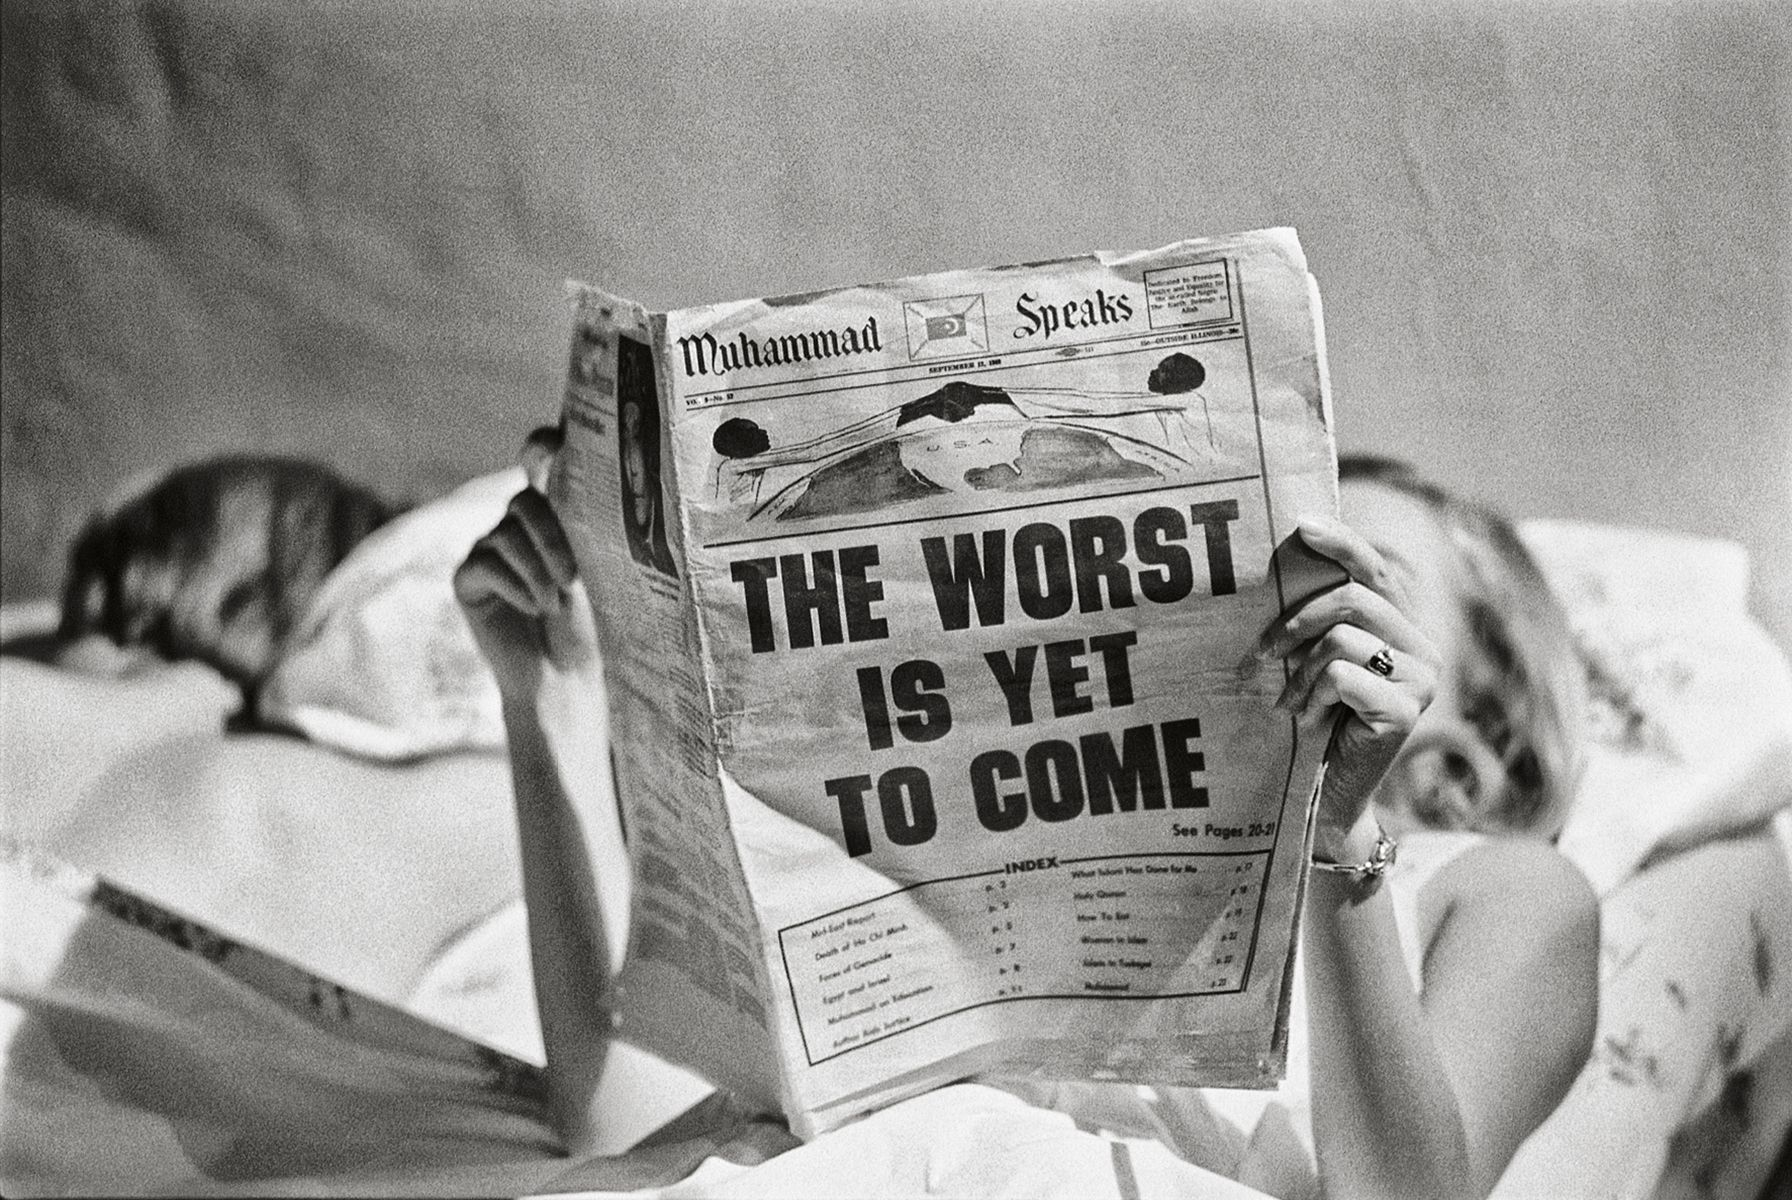 The Worst Is Yet To Come, New York, c. 1968, 16 x 20 Inches, Silver Gelatin Photograph, Edition of 25